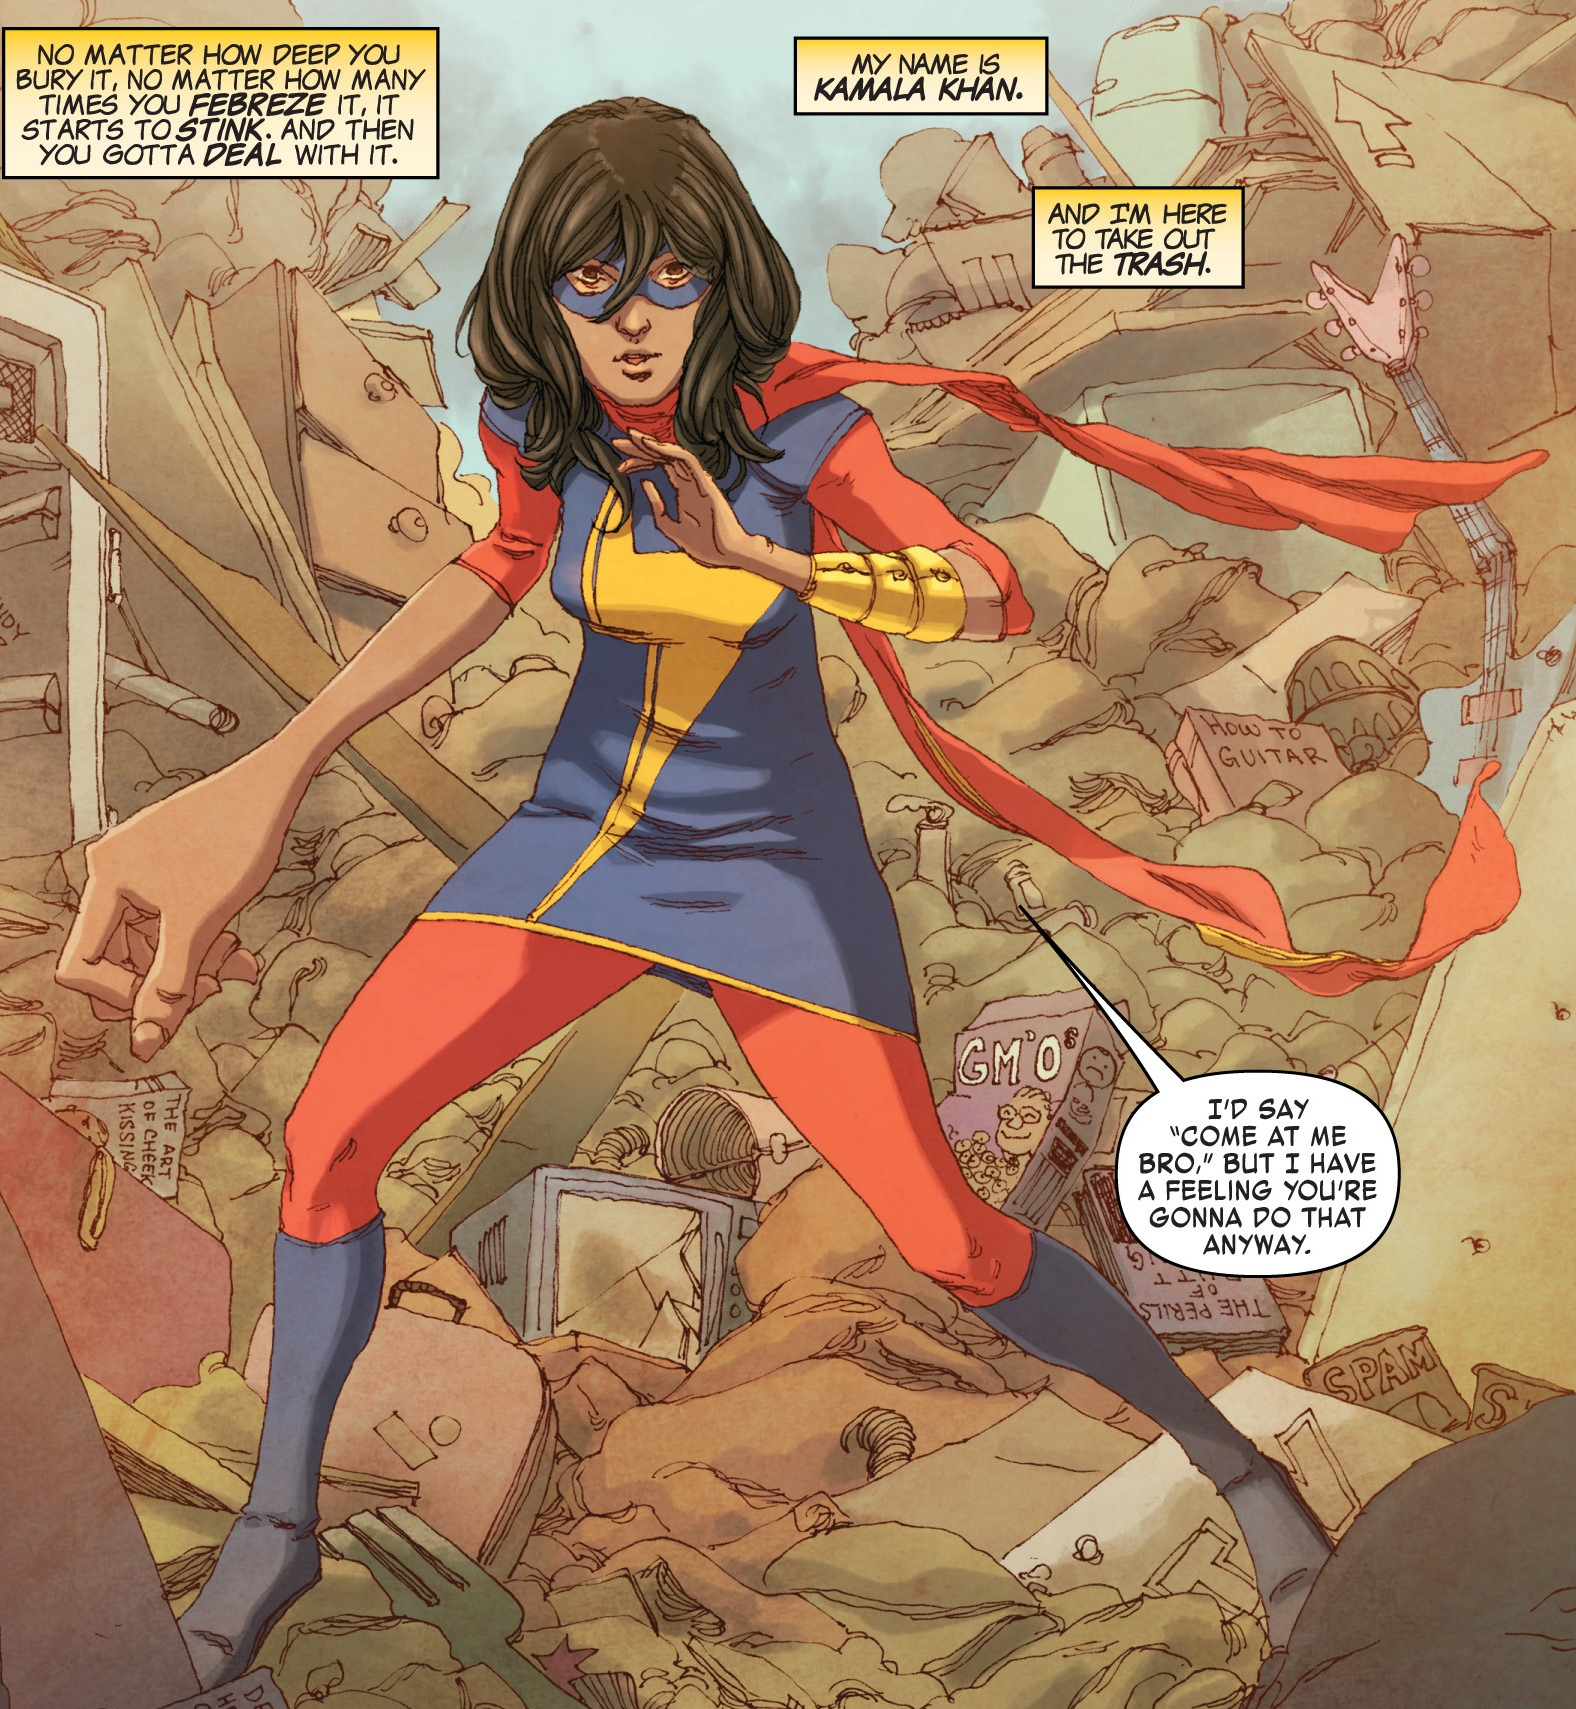 3580100-all-new-marvel-now-point-one-001-032-ms-marvel-tops-october-sales-charts-go-kamala-go